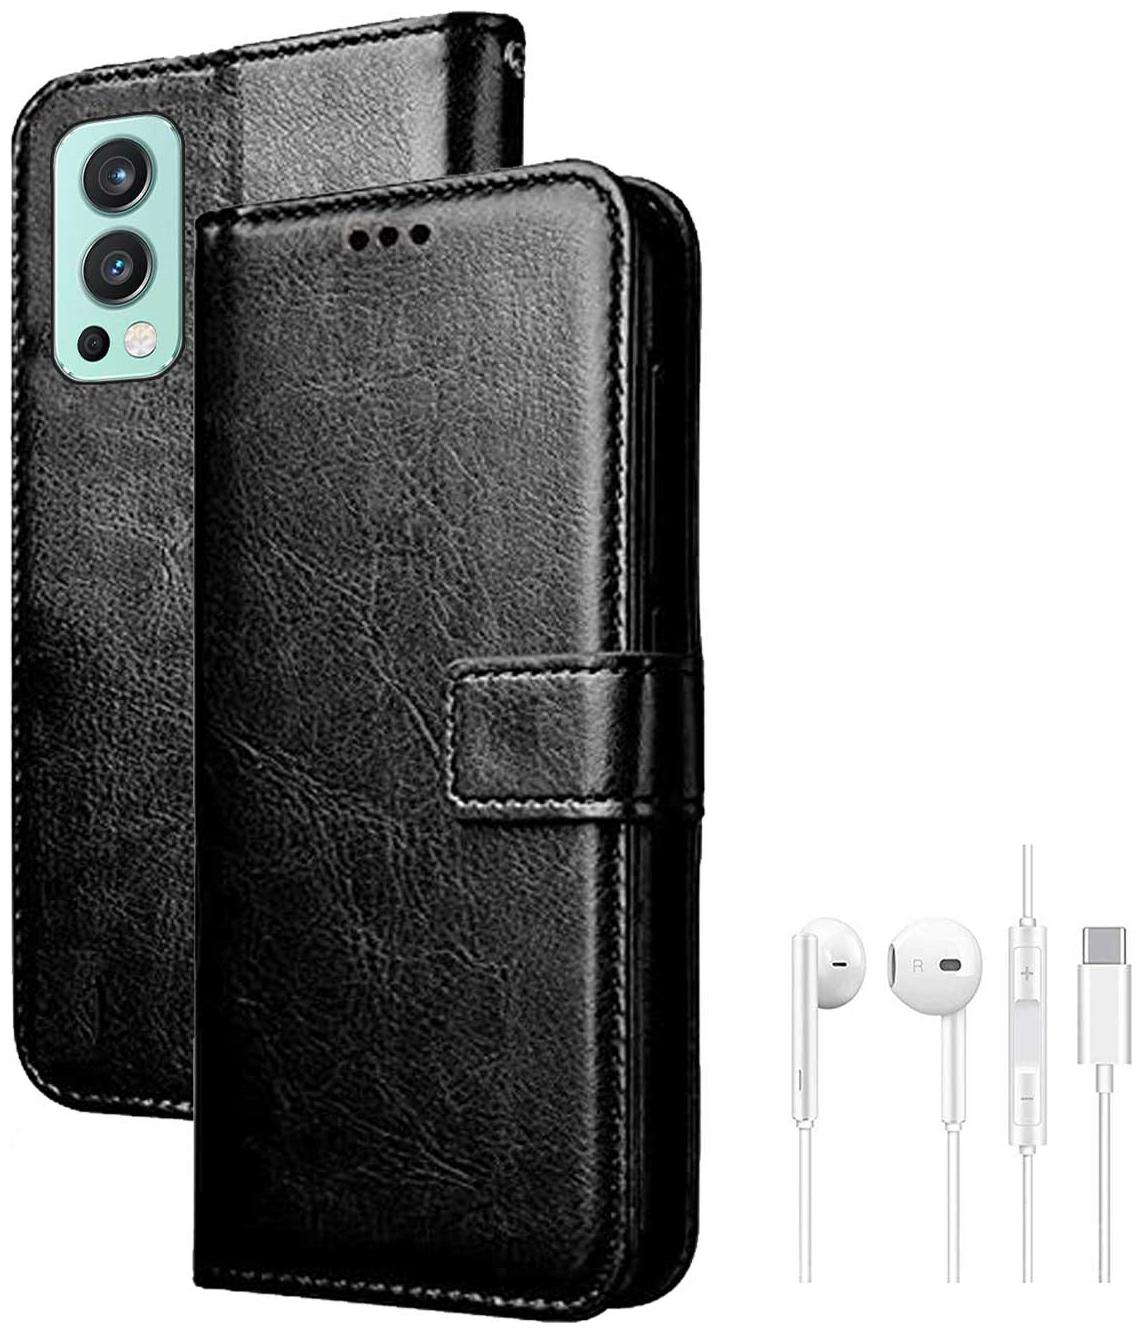 RRTBZ Wallet Flip Cover Case for OnePlus Nord 2 5G with Earphone by T B Z